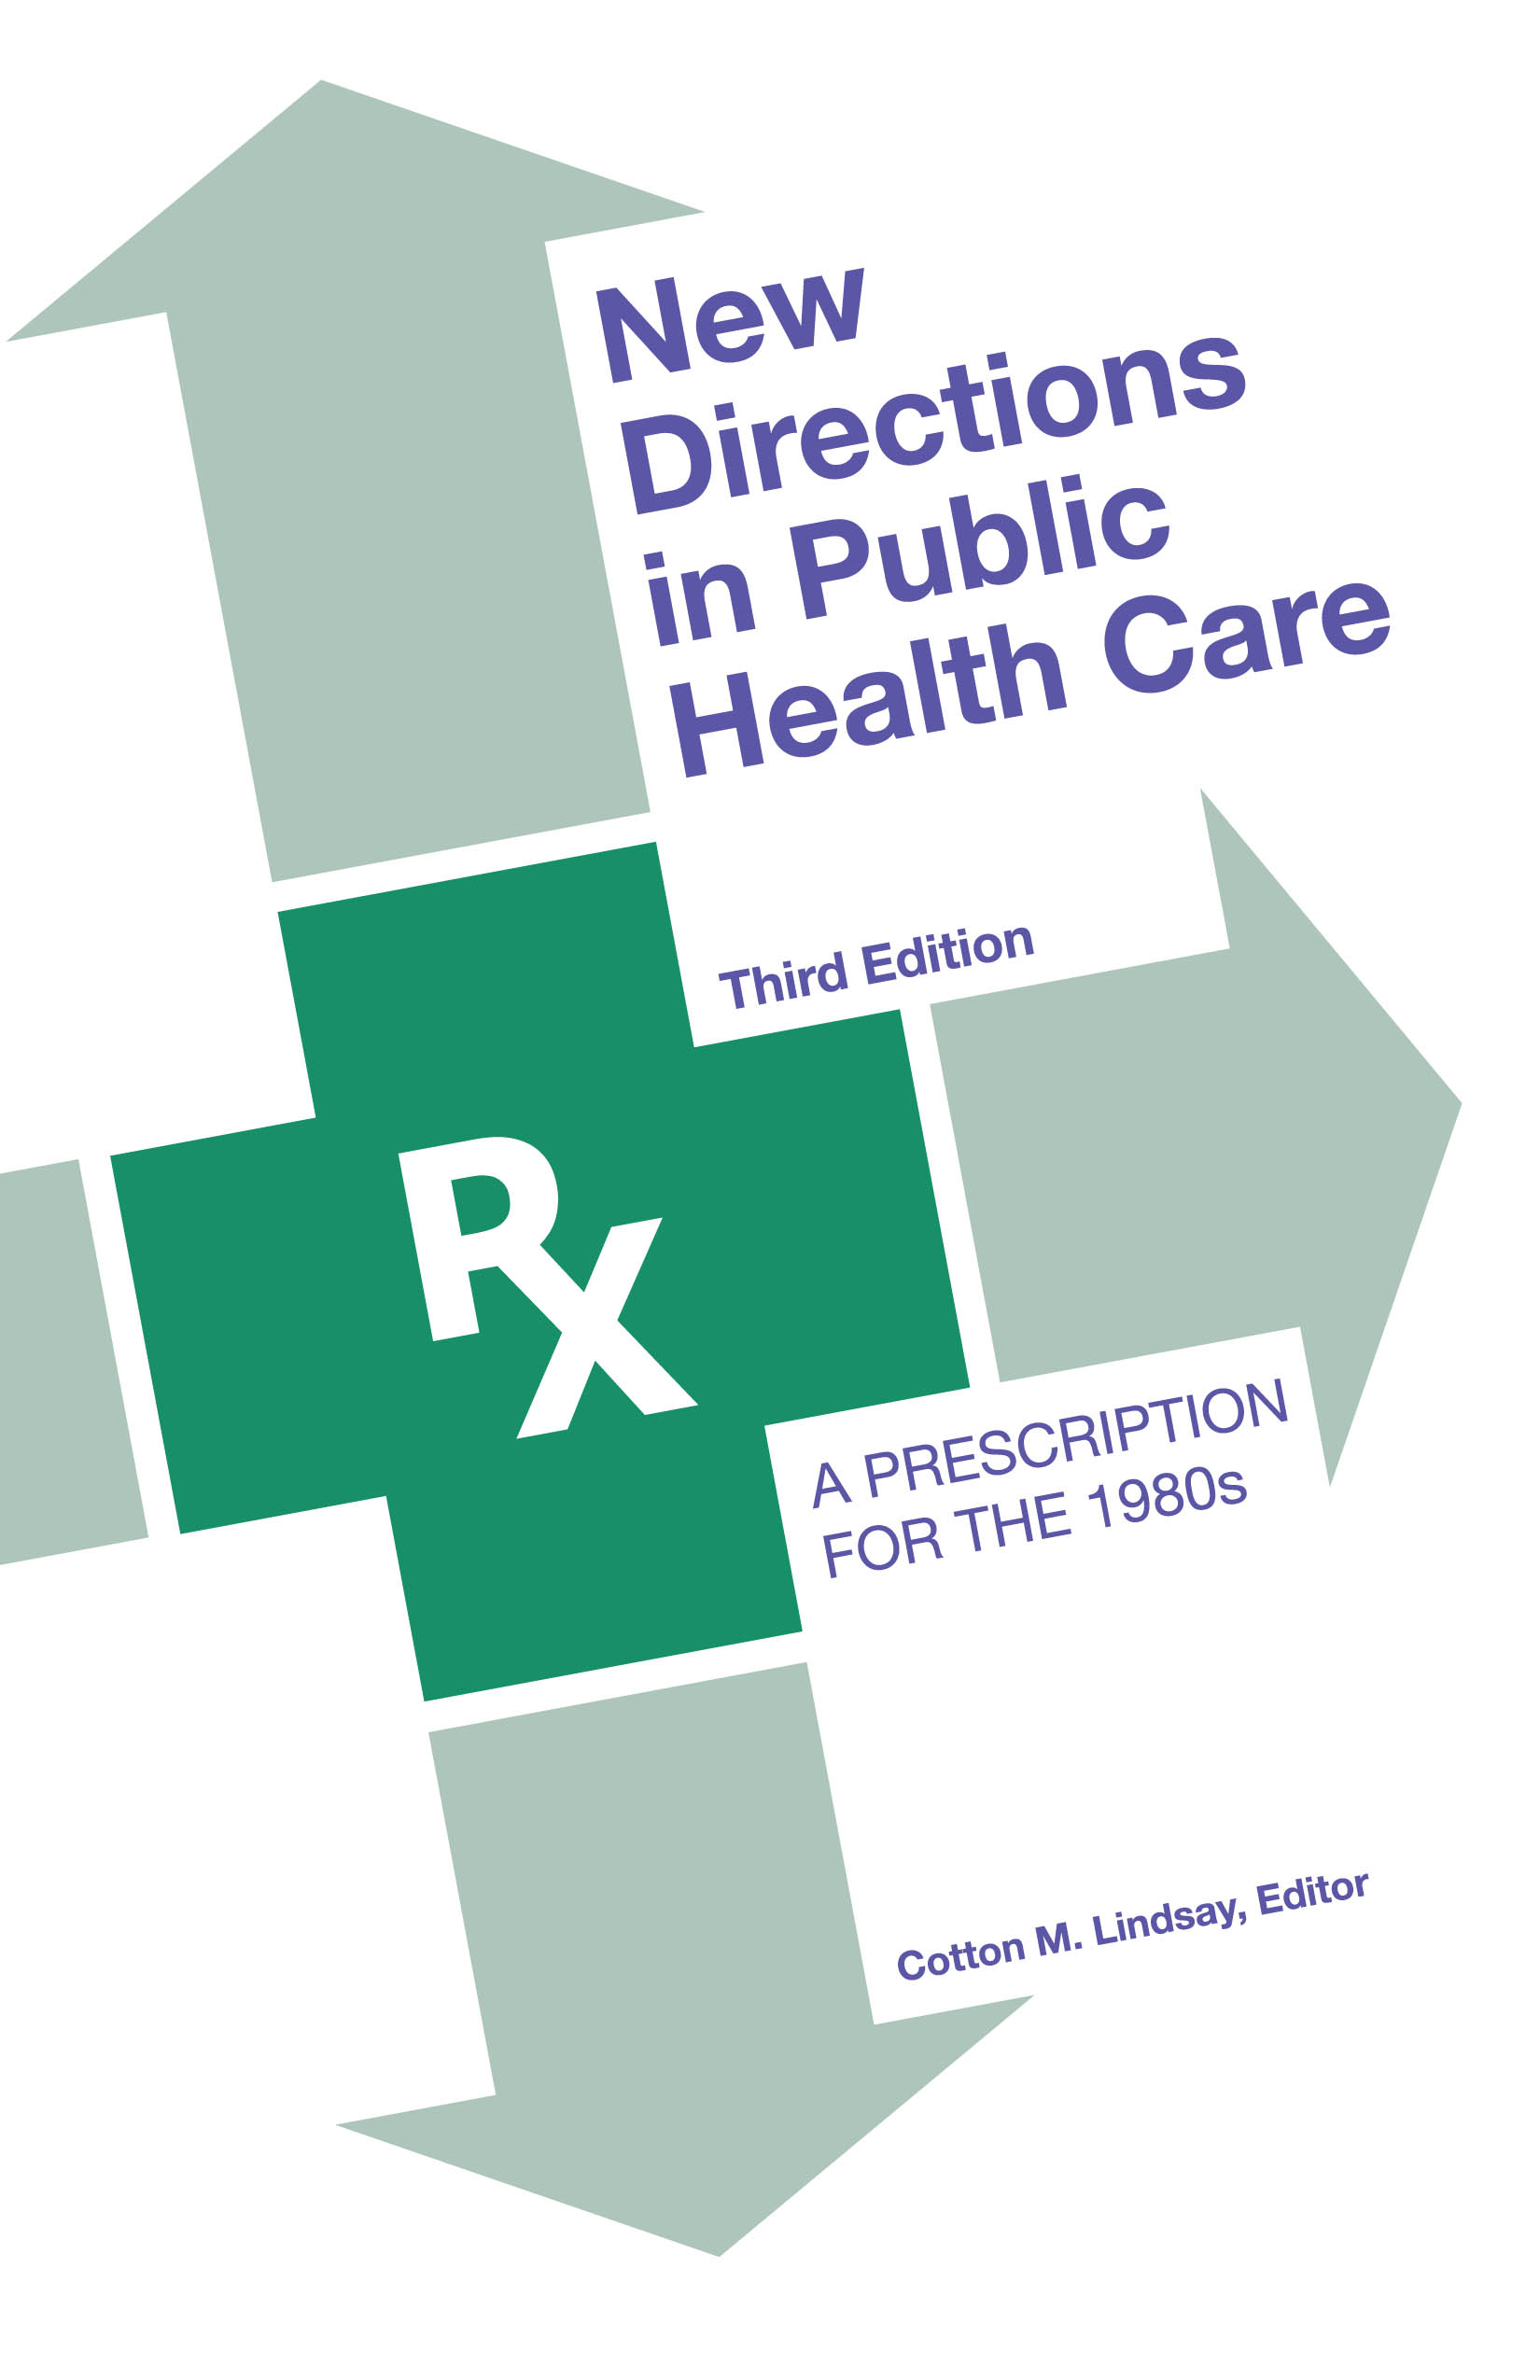 New Directions in Public Health Care